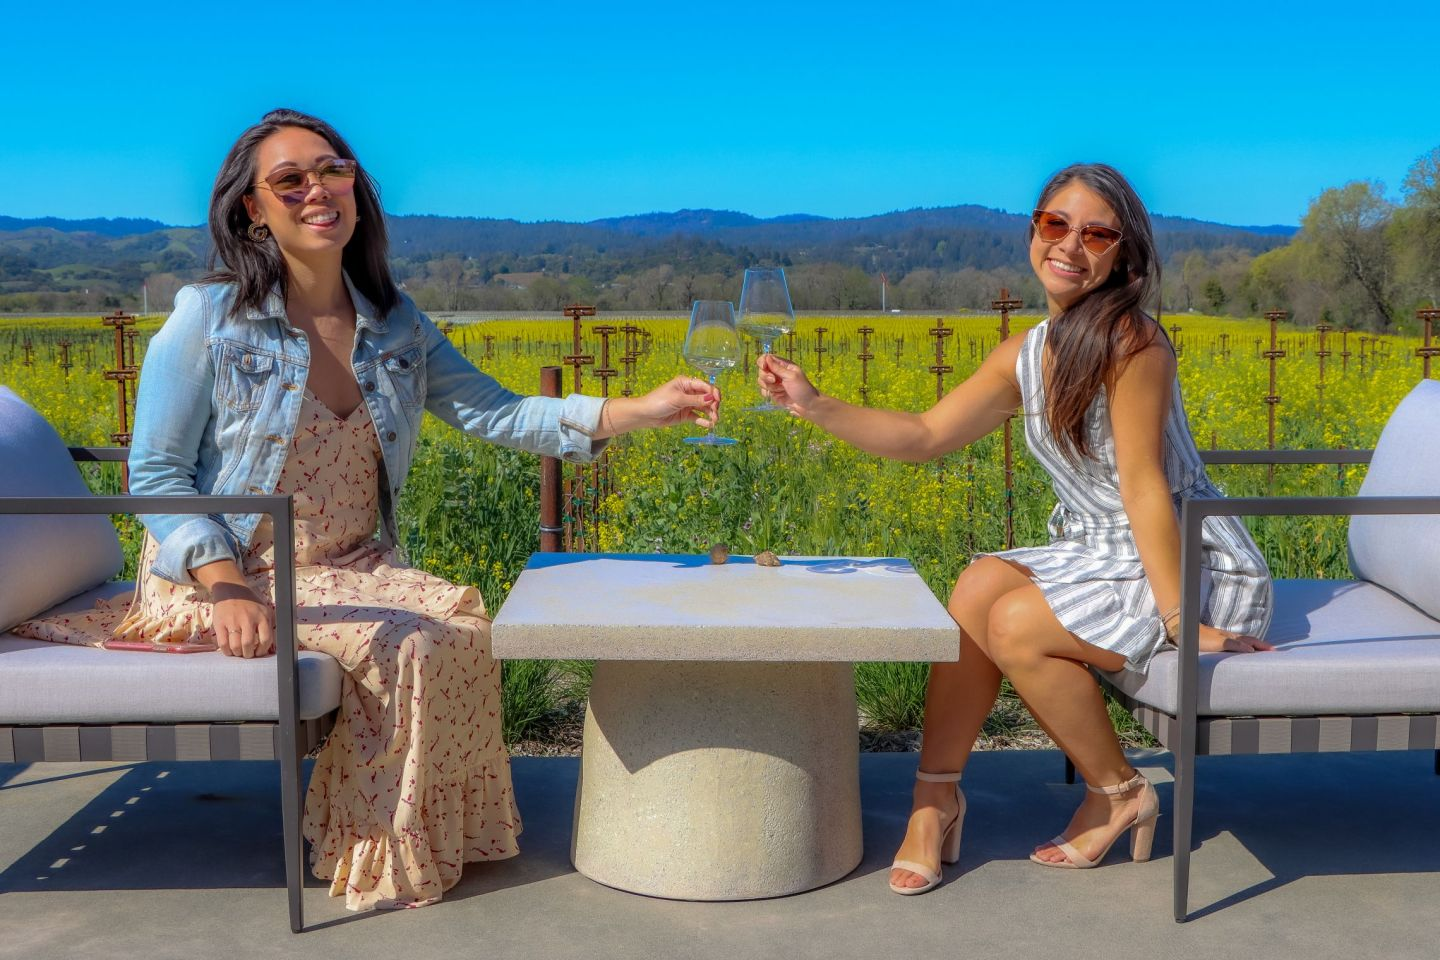 Drinking wine in Sonoma County.